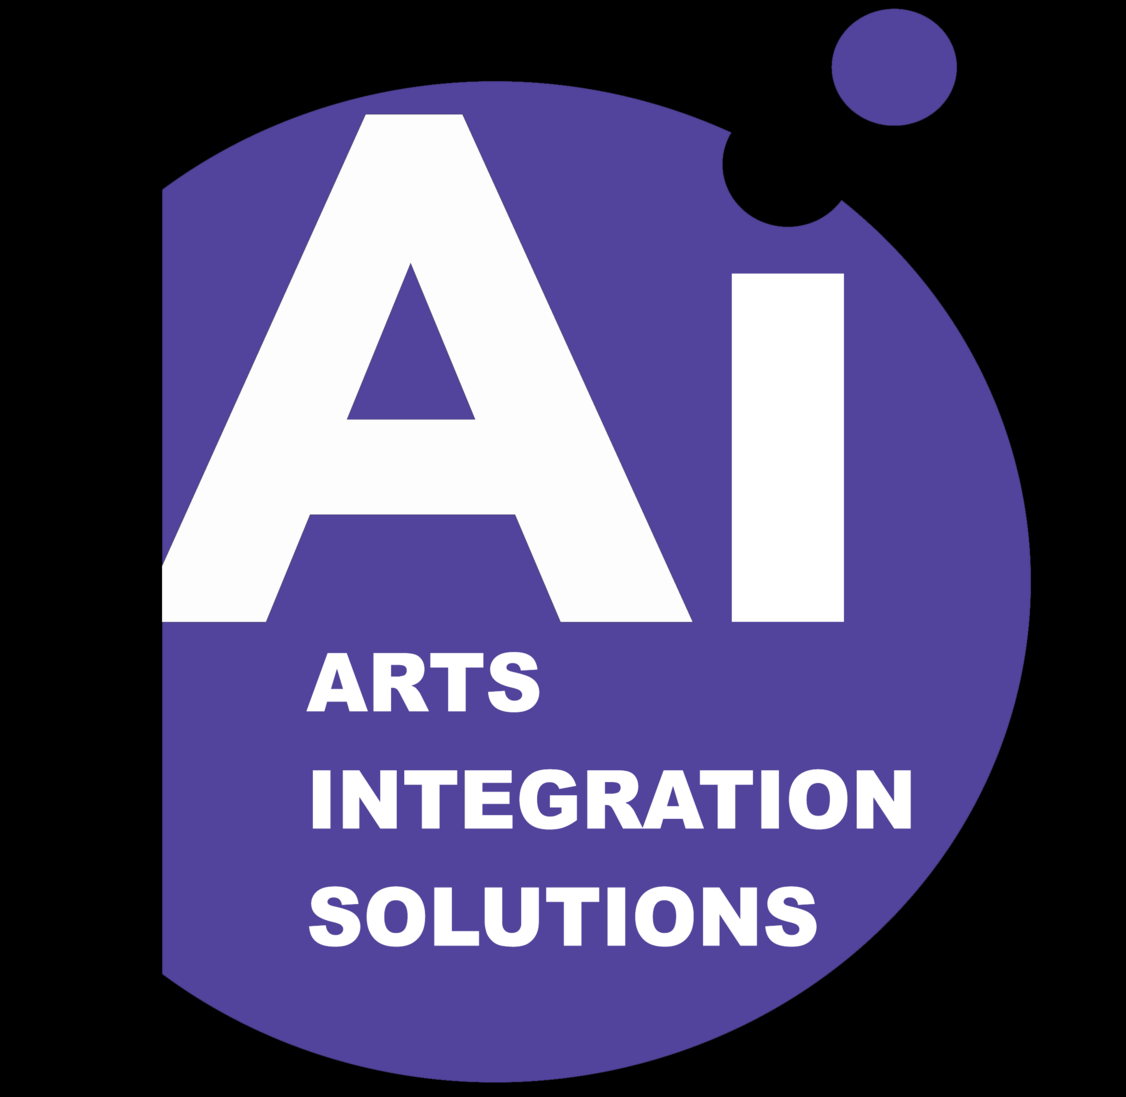 Arts Integration Solutions